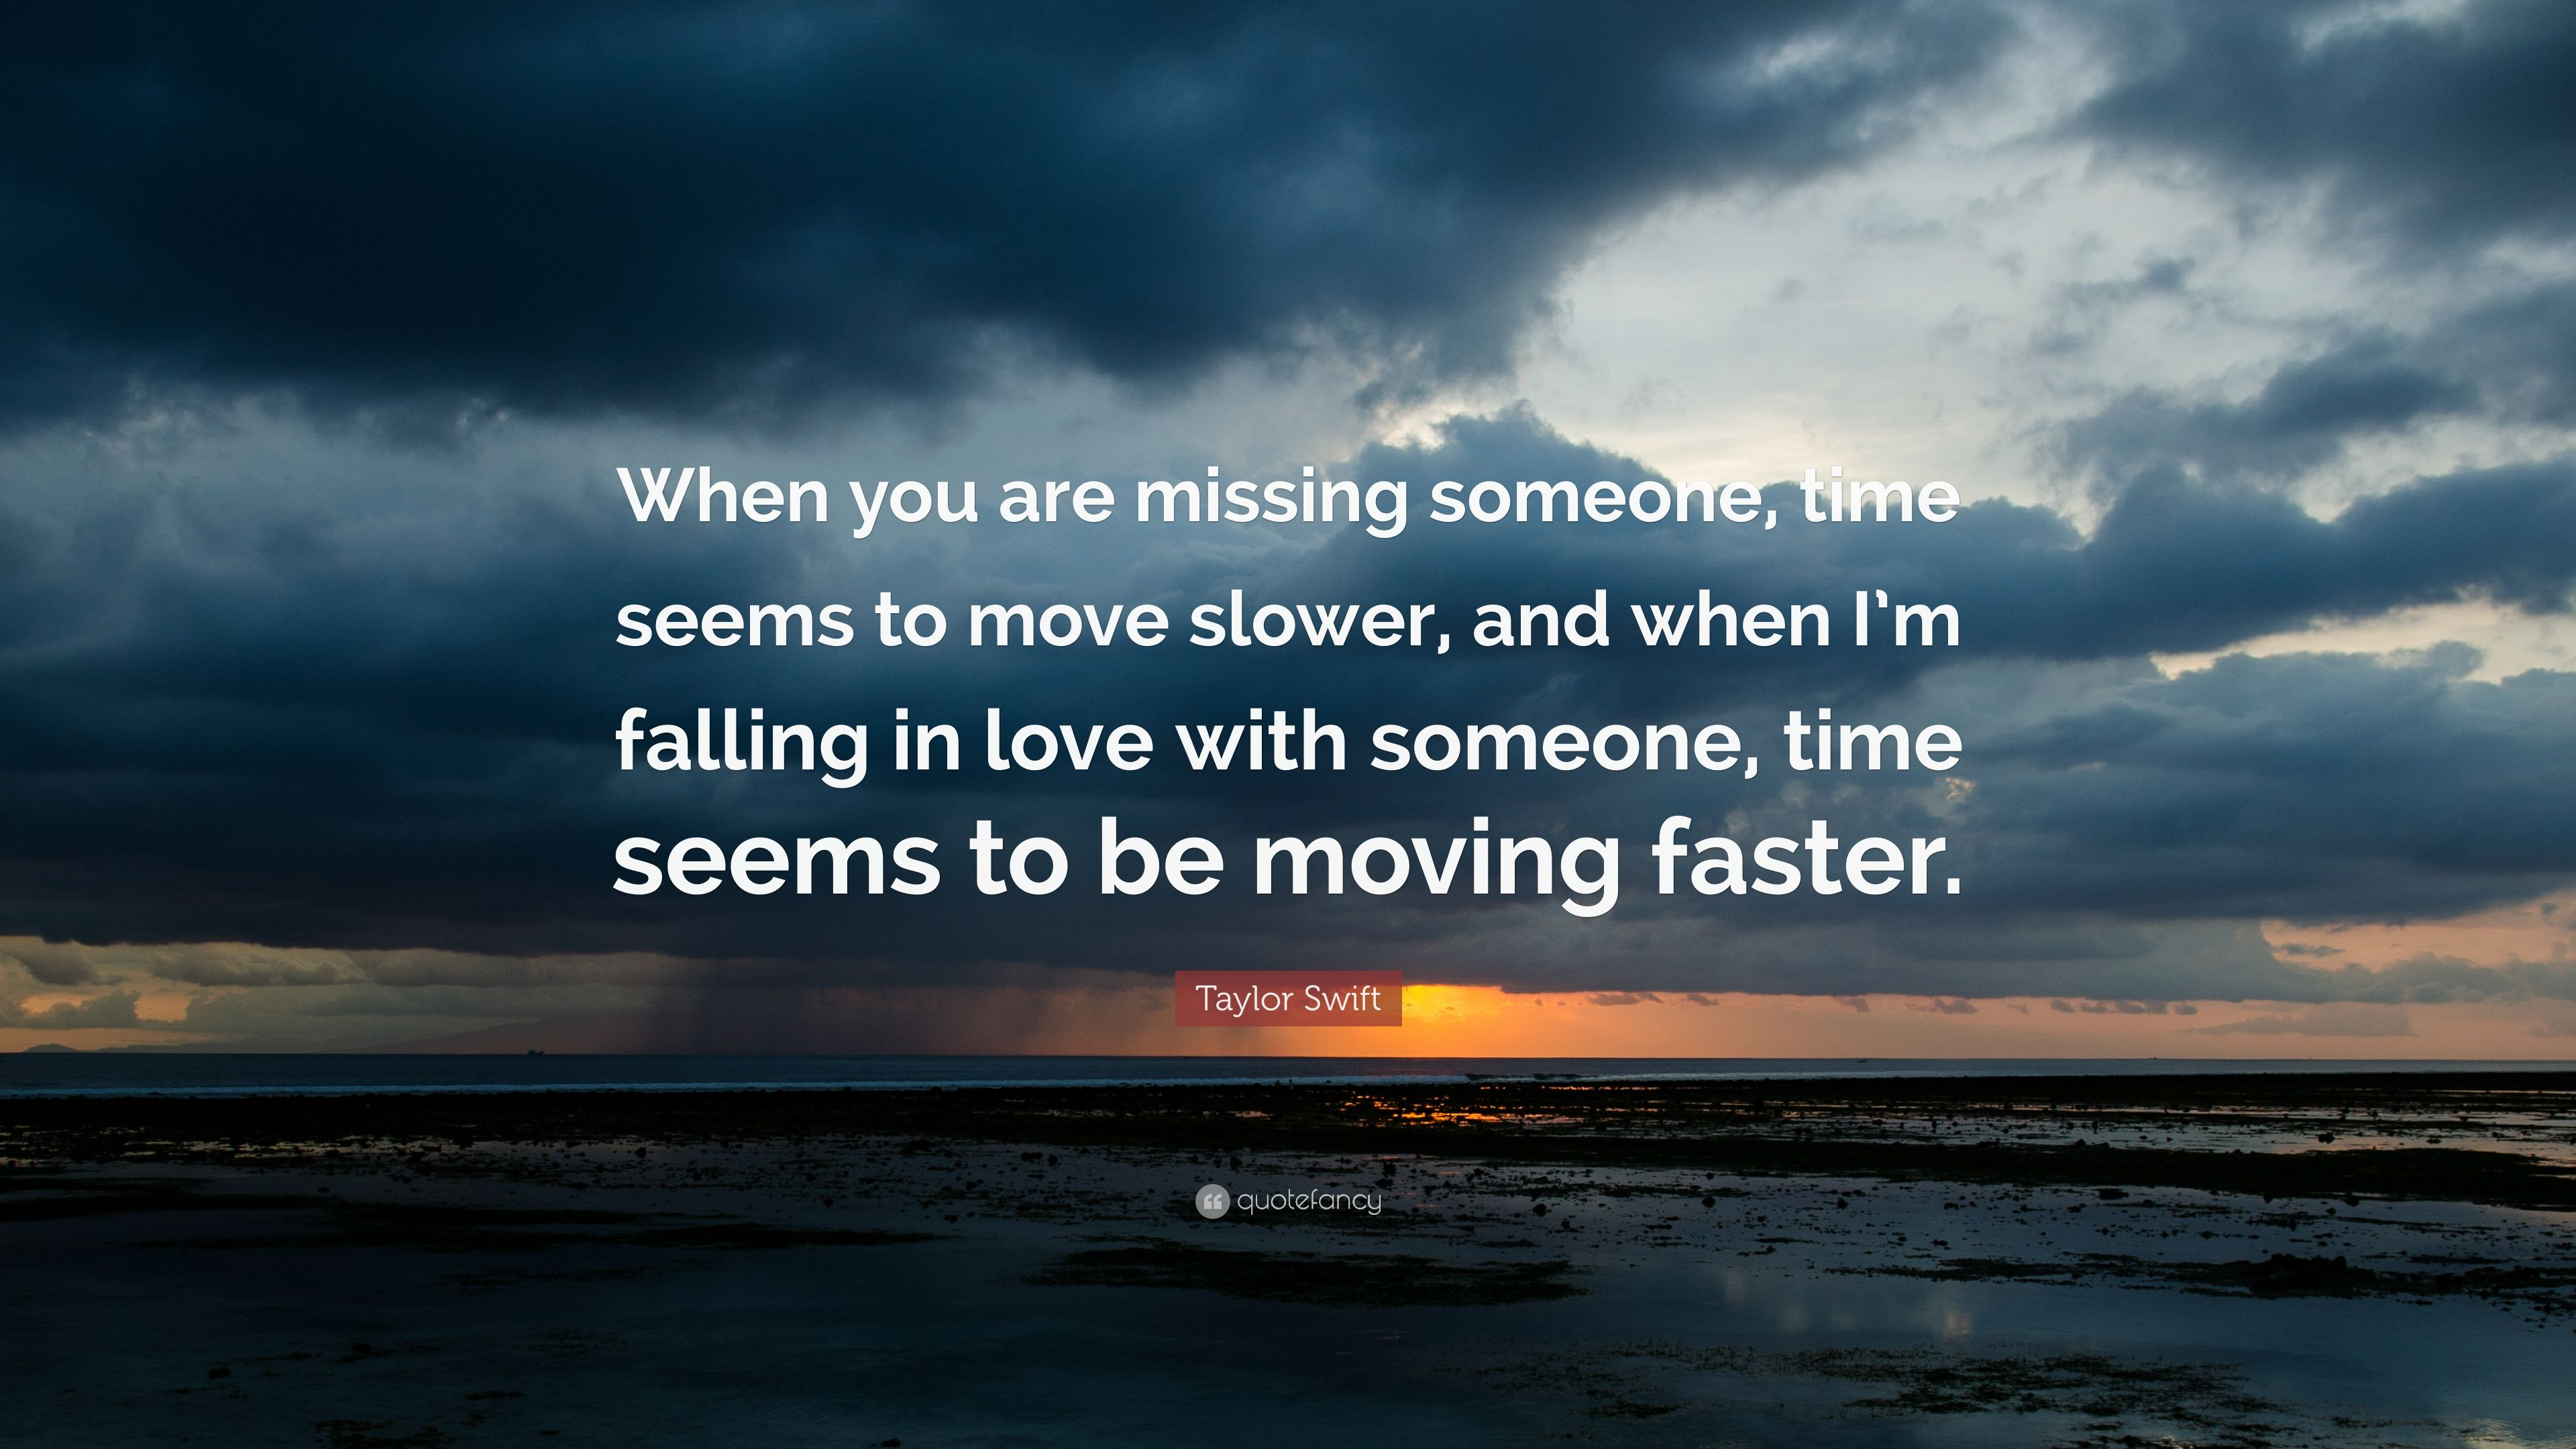 "Taylor Swift Quote ""When you are missing someone time seems to move slower"